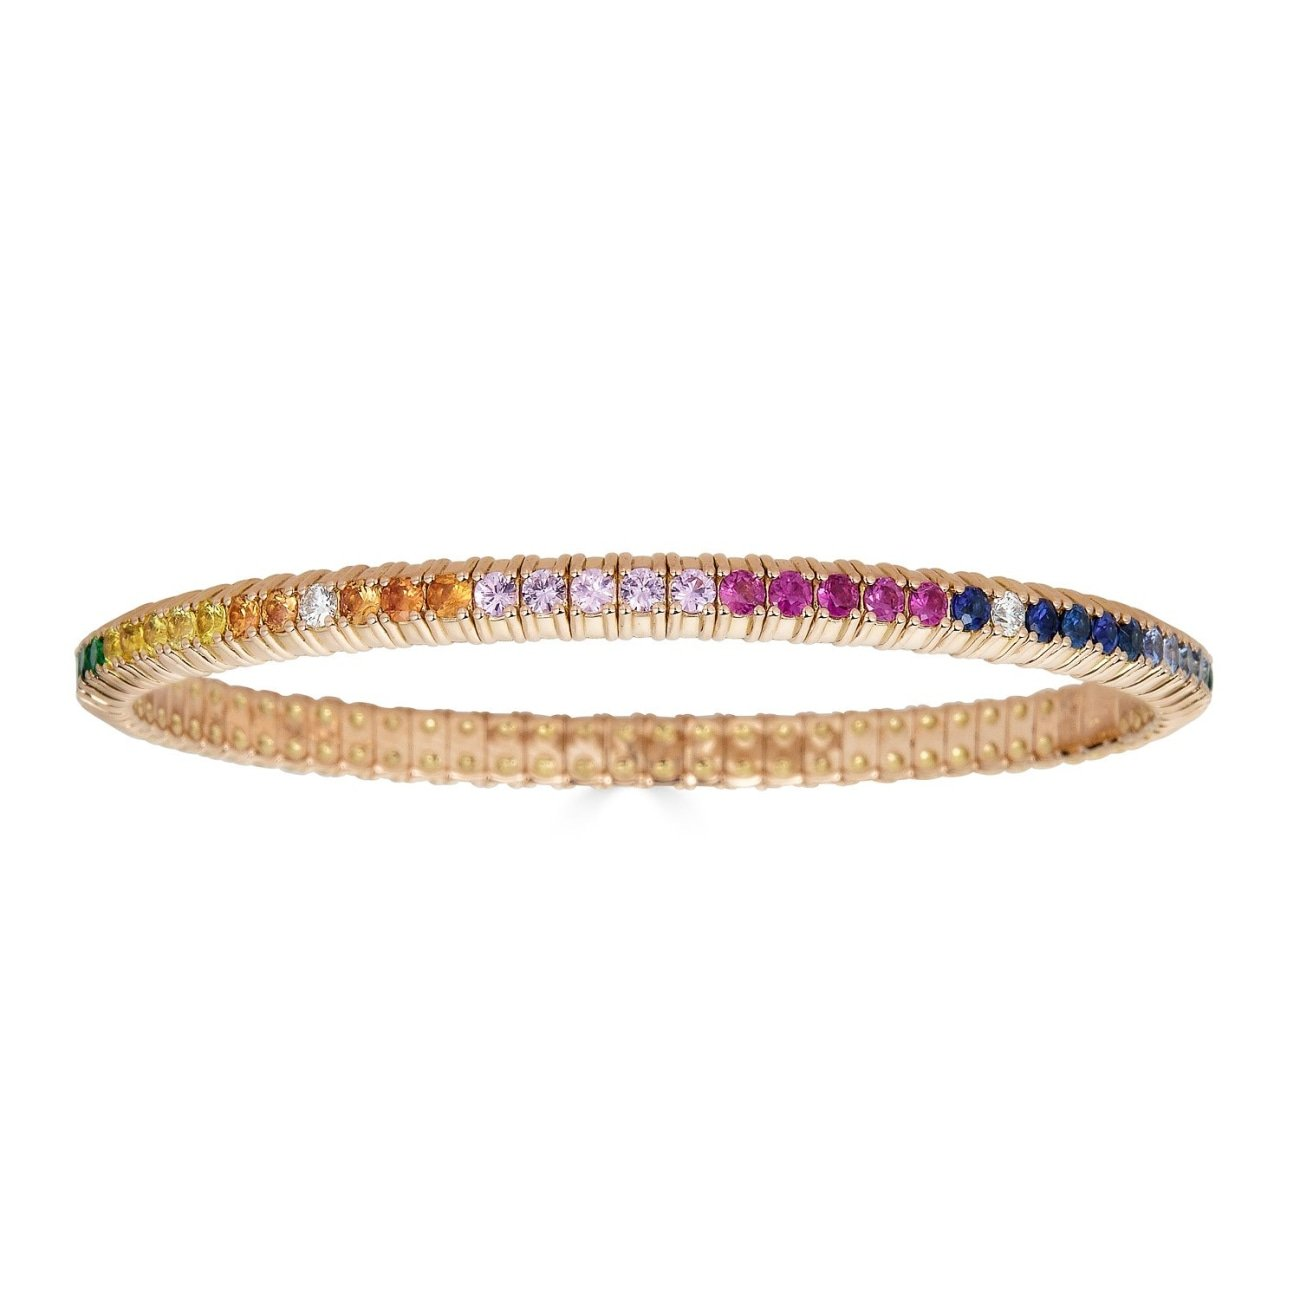 https://www.manfredijewels.com/collections/jewelry/products/rainbow-stretch-bracelet-in-18kt-yellow-gold-1